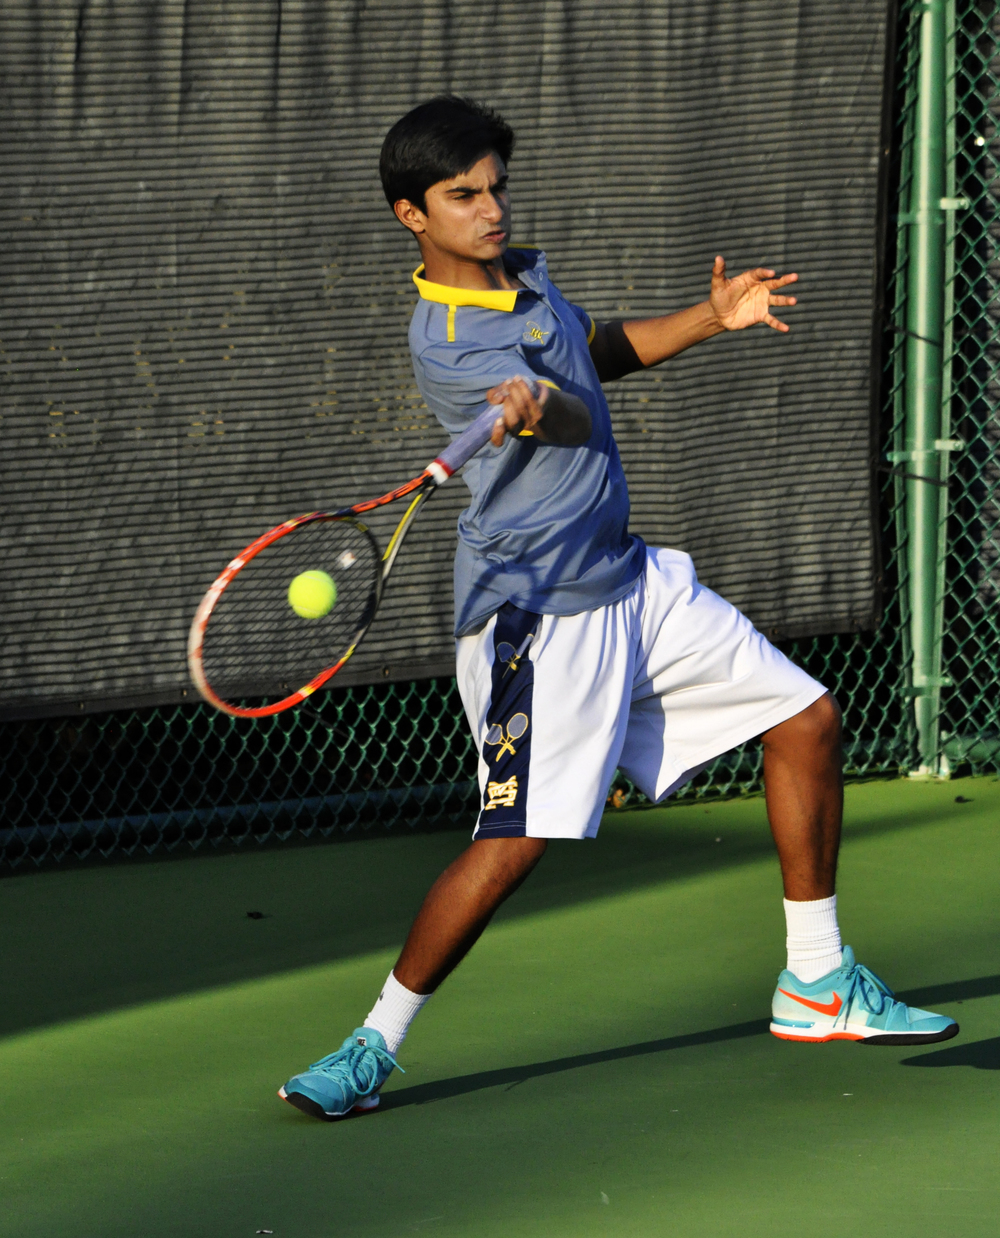 Fully loaded with a powerful forehand, junior Gopal Raman makes contact with the tennis ball during his Feb. 26 doubles match against Highland Park.